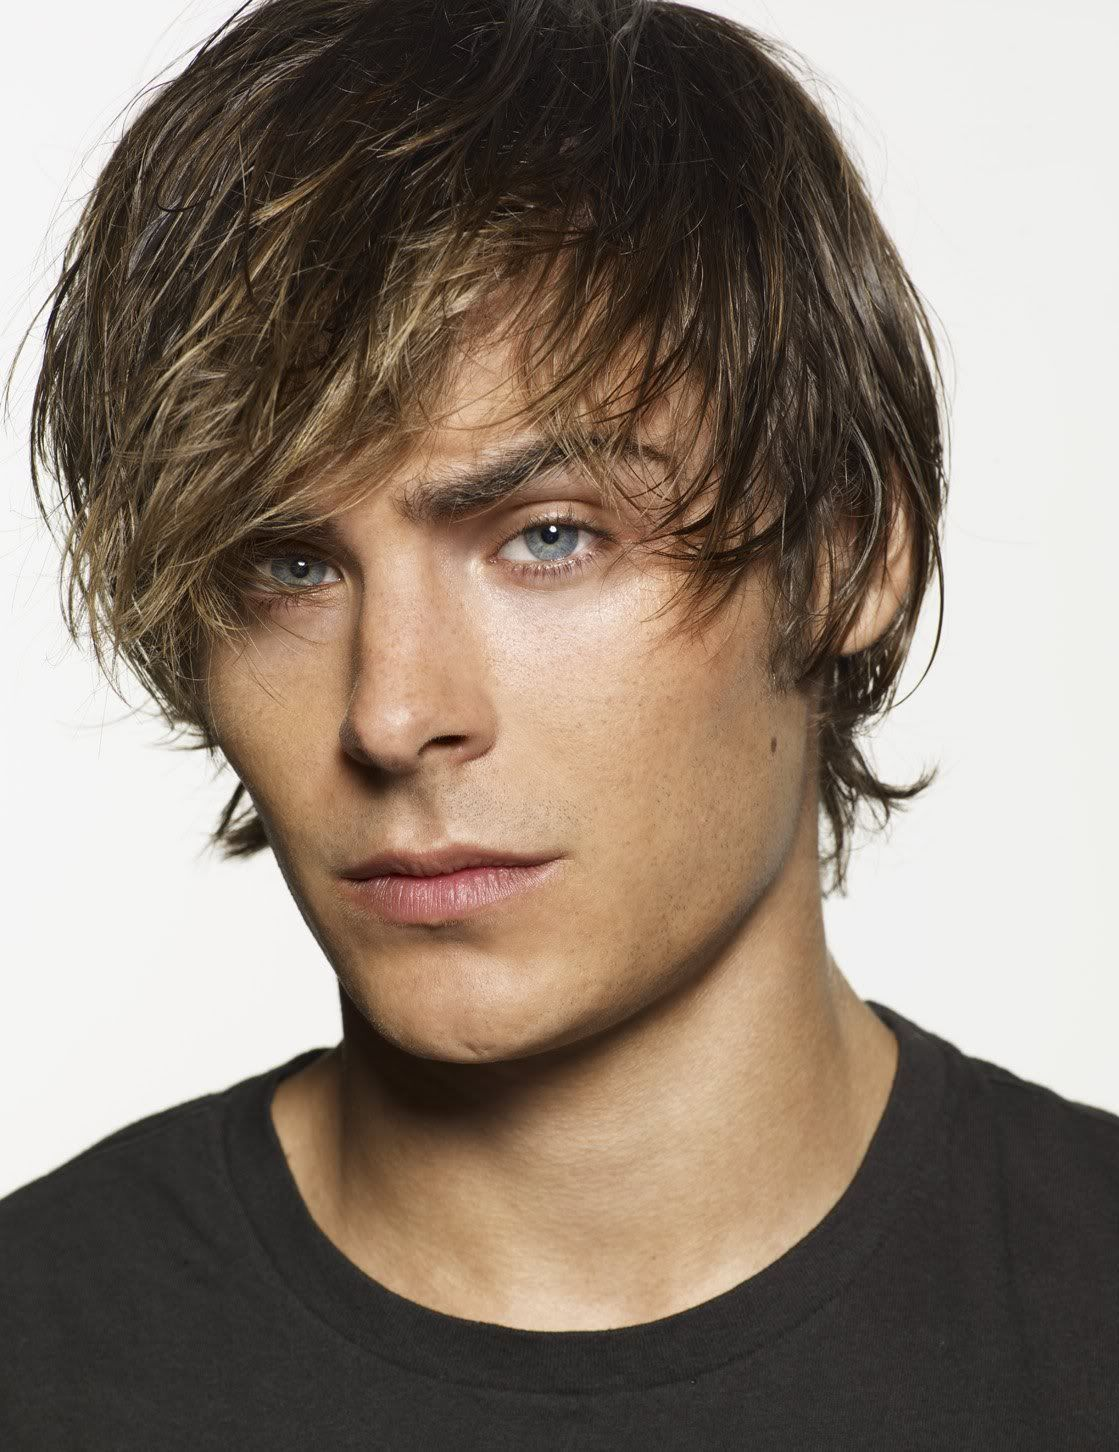 Hairstyles For Long Hair Men new long hairstyles for men Elegant Bob Hairstyles For Men